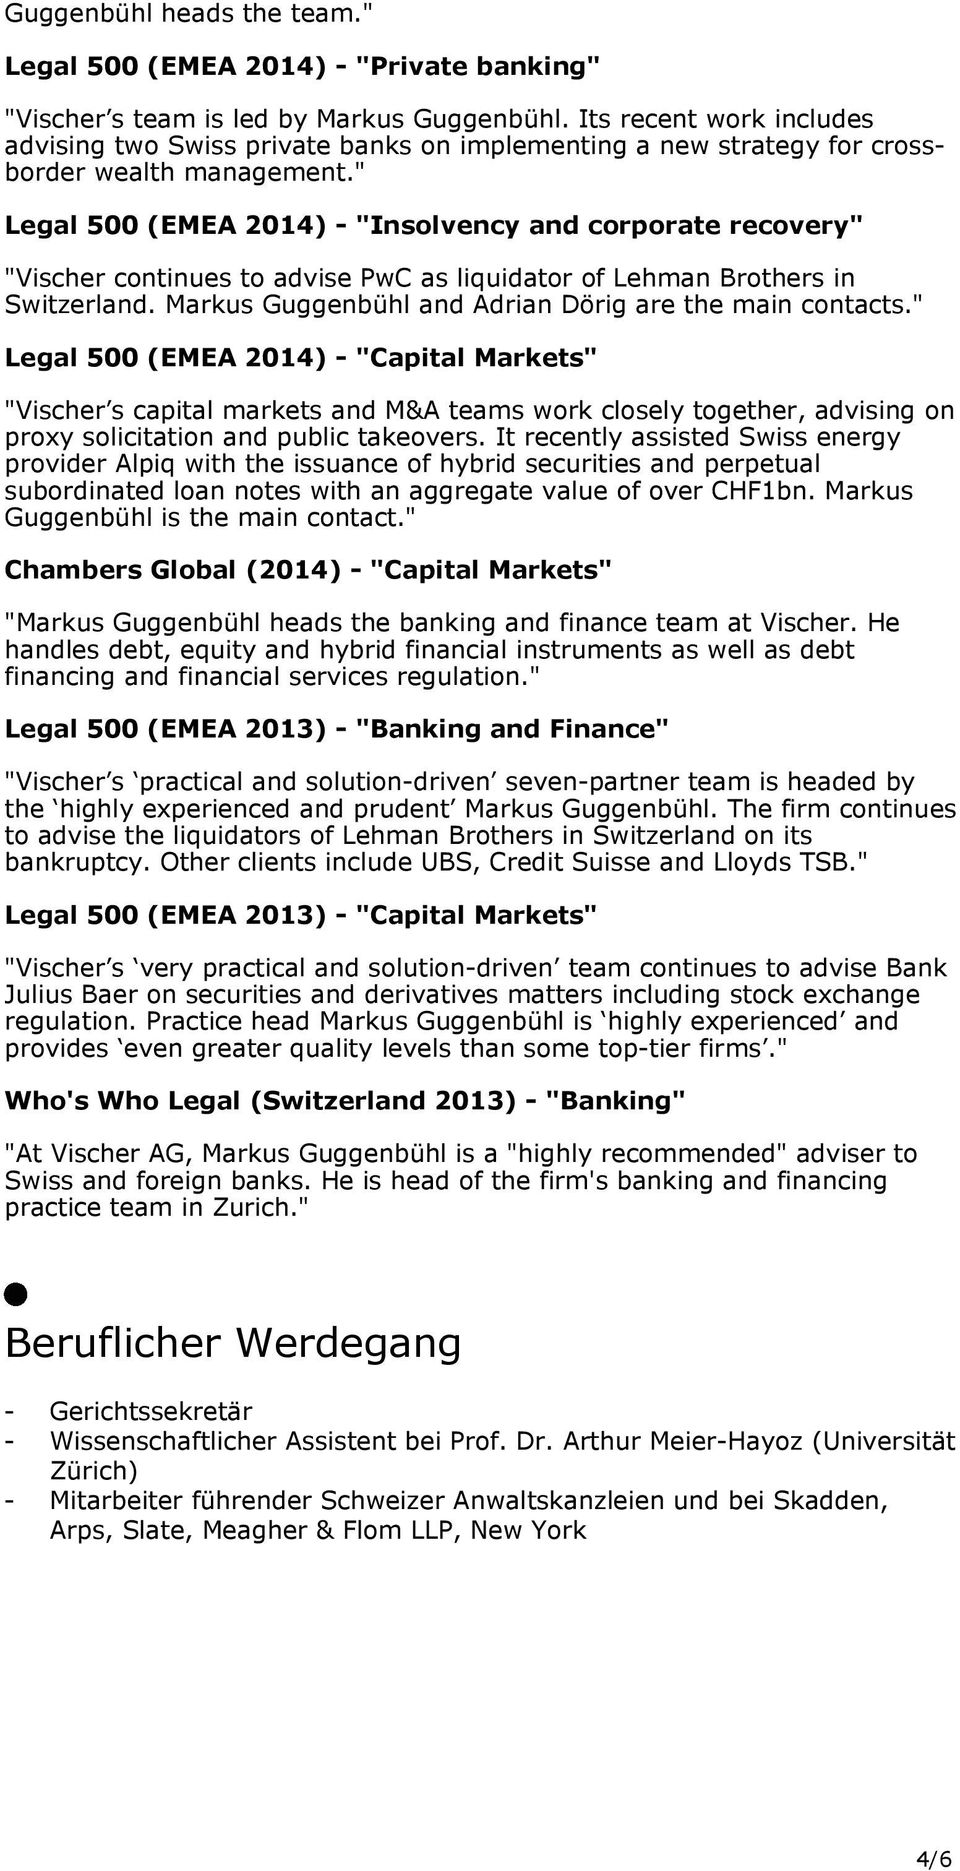 """ Legal 500 (EMEA 2014) - ""Insolvency and corporate recovery"" ""Vischer continues to advise PwC as liquidator of Lehman Brothers in Switzerland."